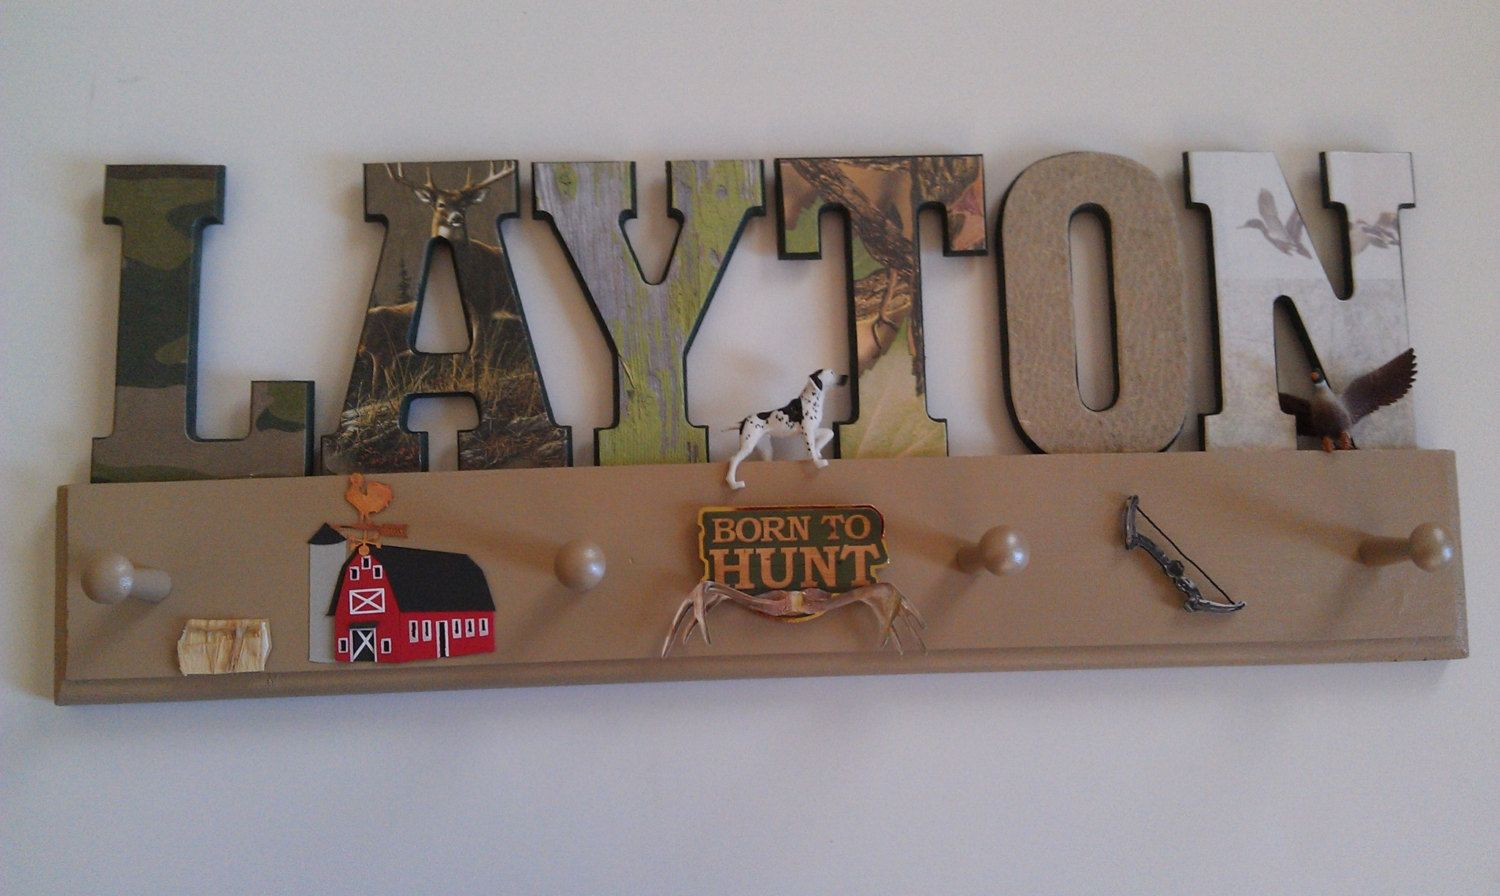 ... Hat/Coat Rack-Duck/Deer Hunting